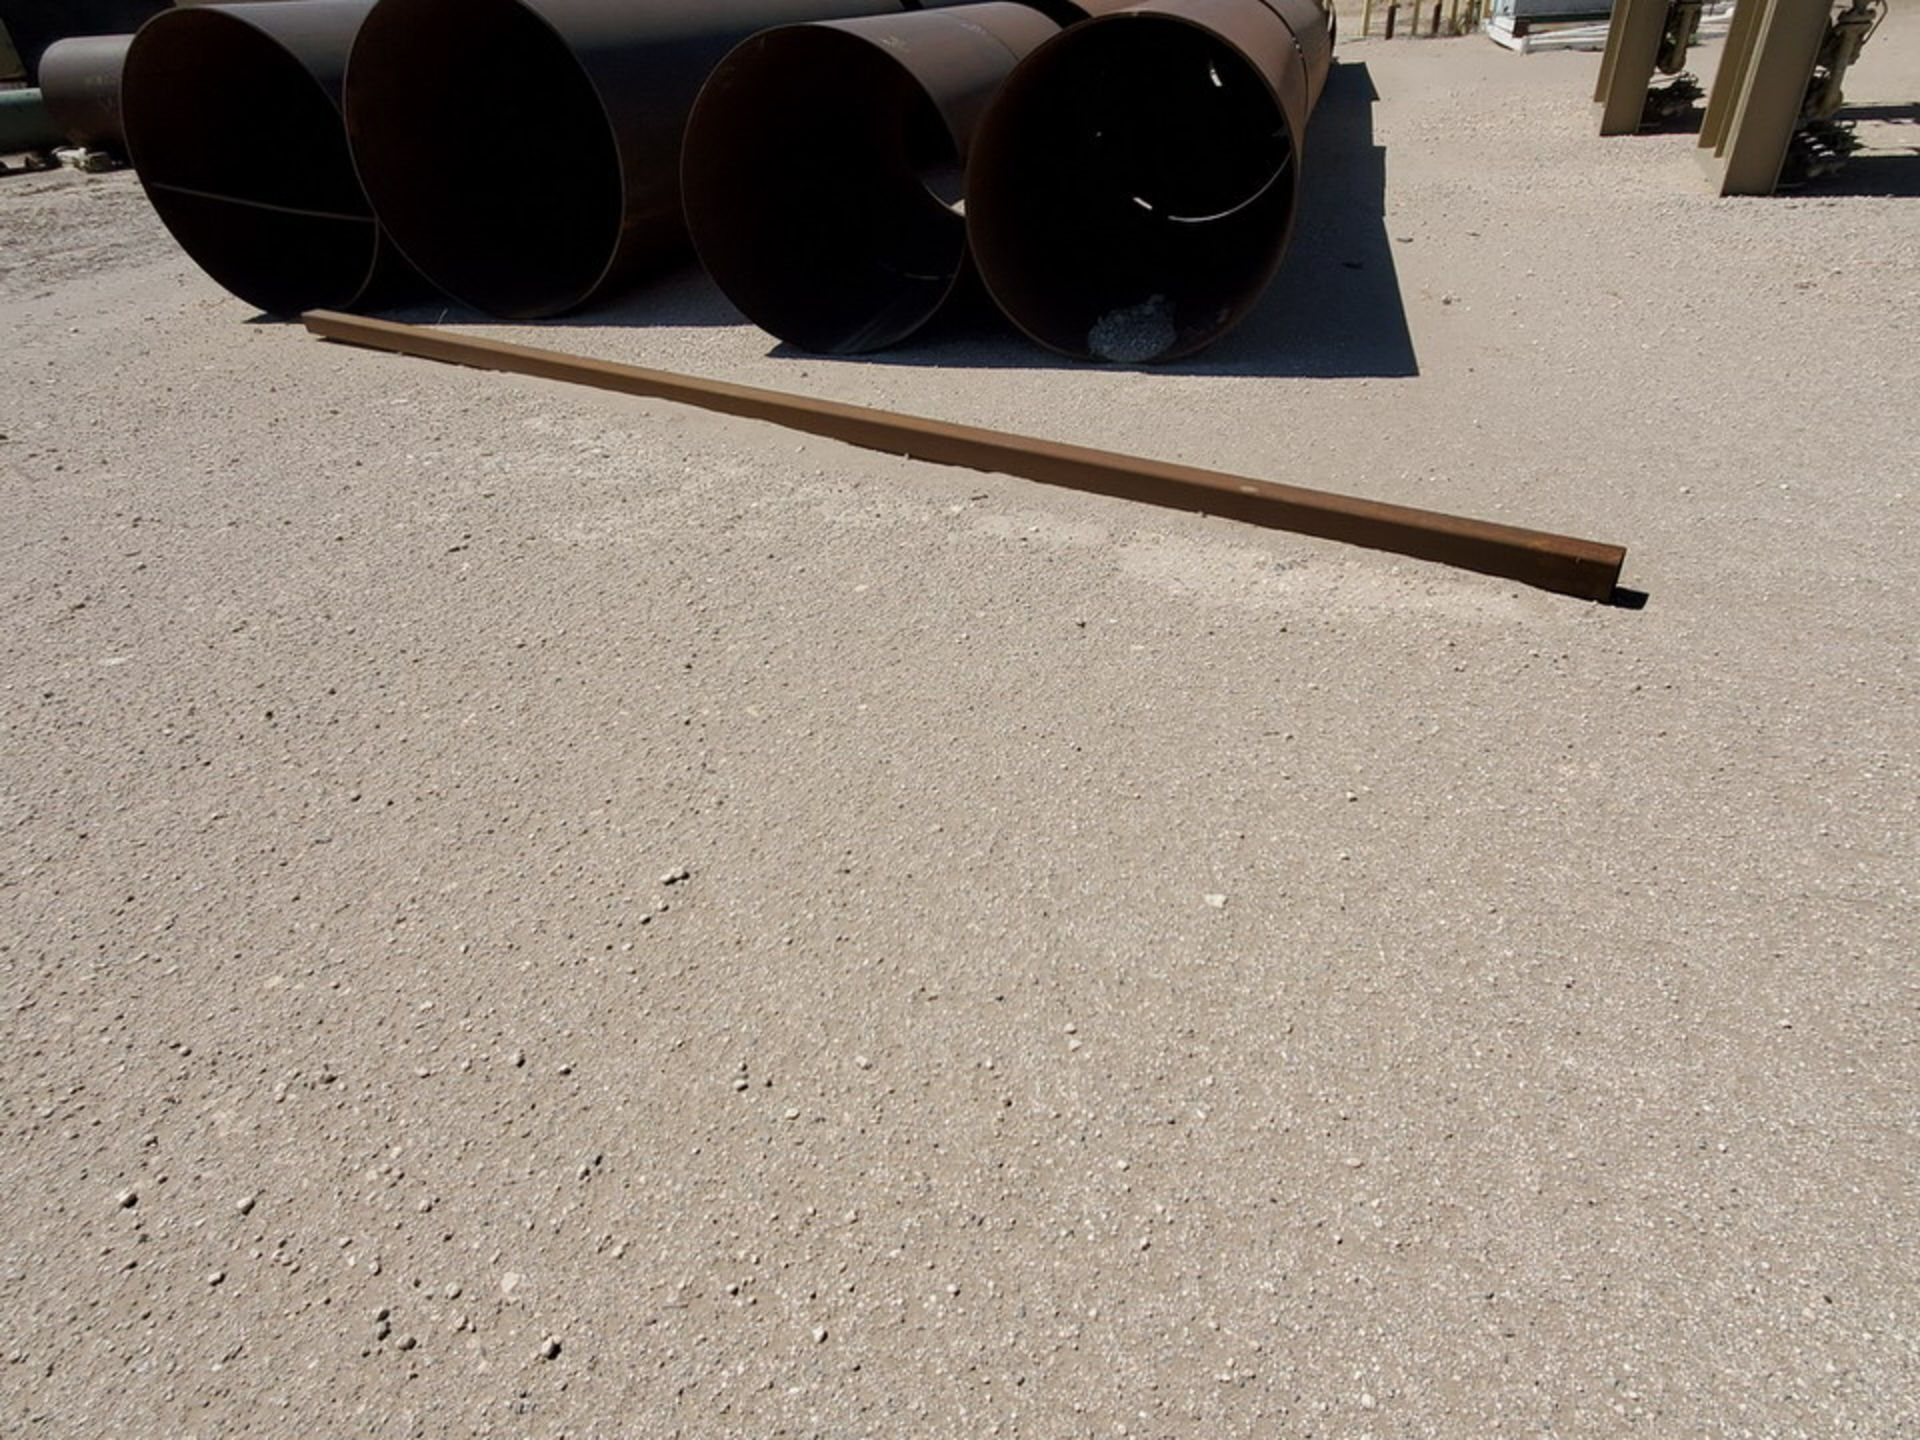 "Assorted Matl. To Include But Not Limited To: Angle, Channel, Sq. Tubing, Rect. Tubing, etc., 6"" - - Image 8 of 16"